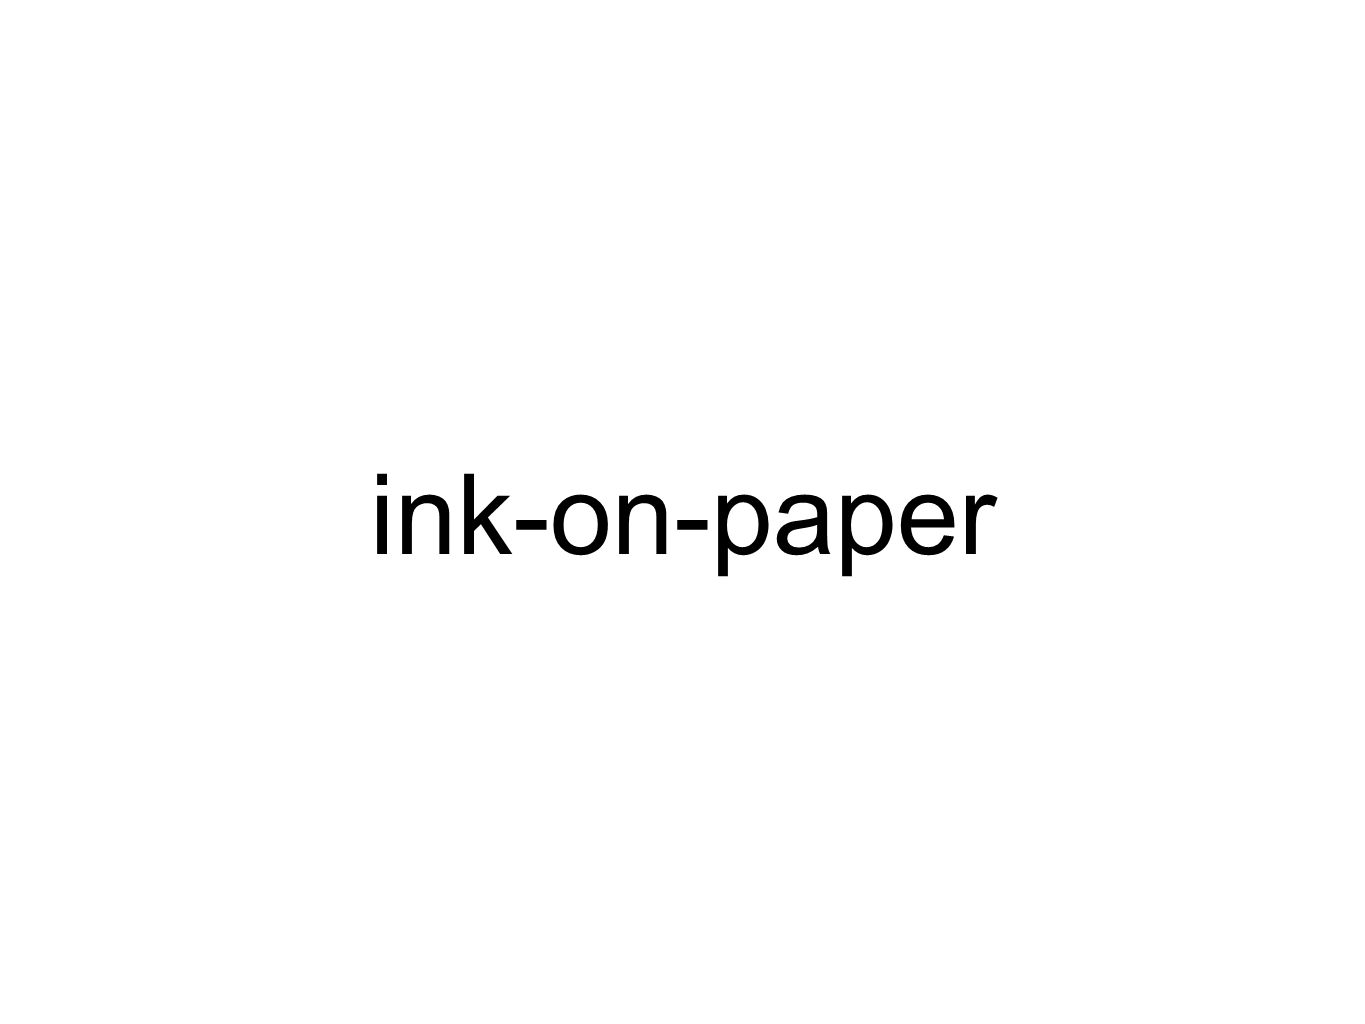 ink-on-paper